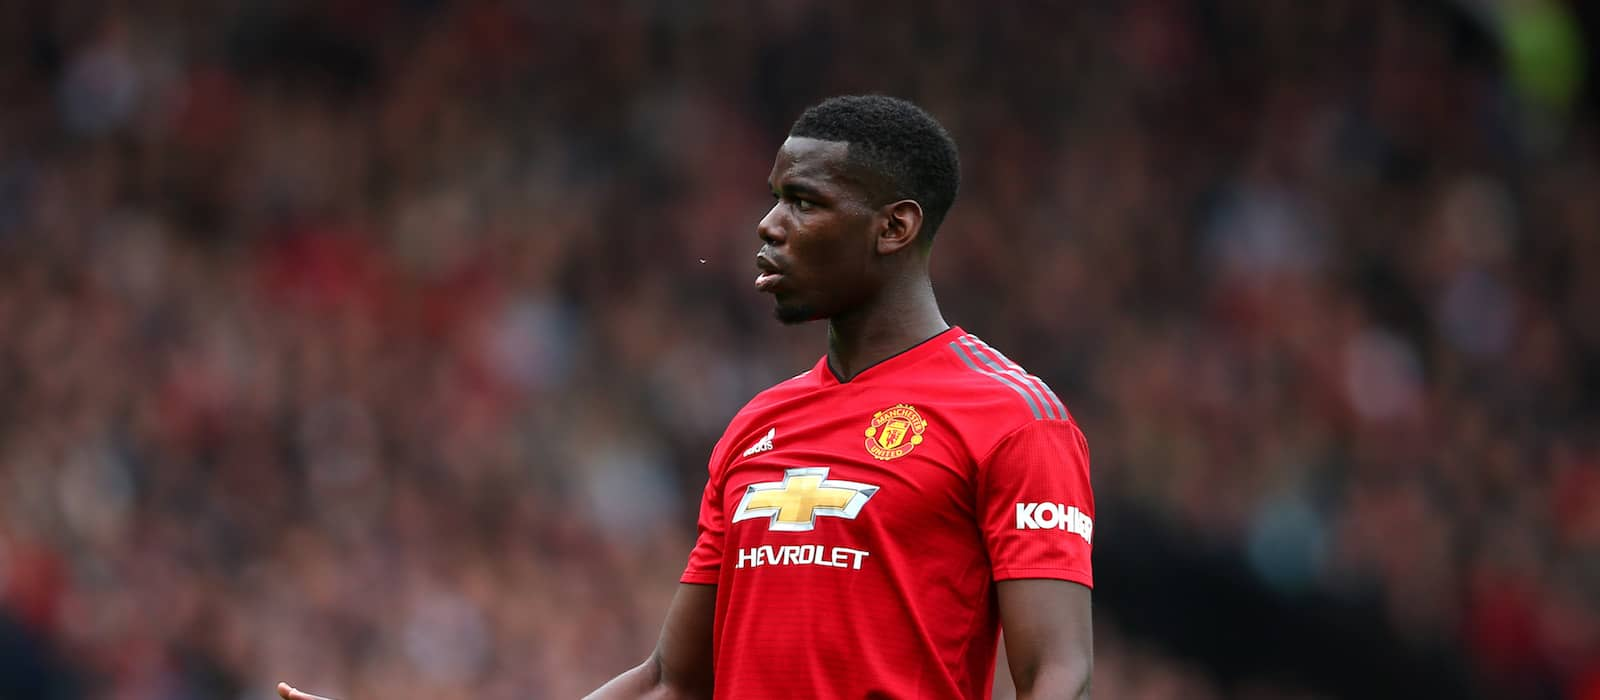 Real Madrid will not give up on Paul Pogba until after transfer deadline